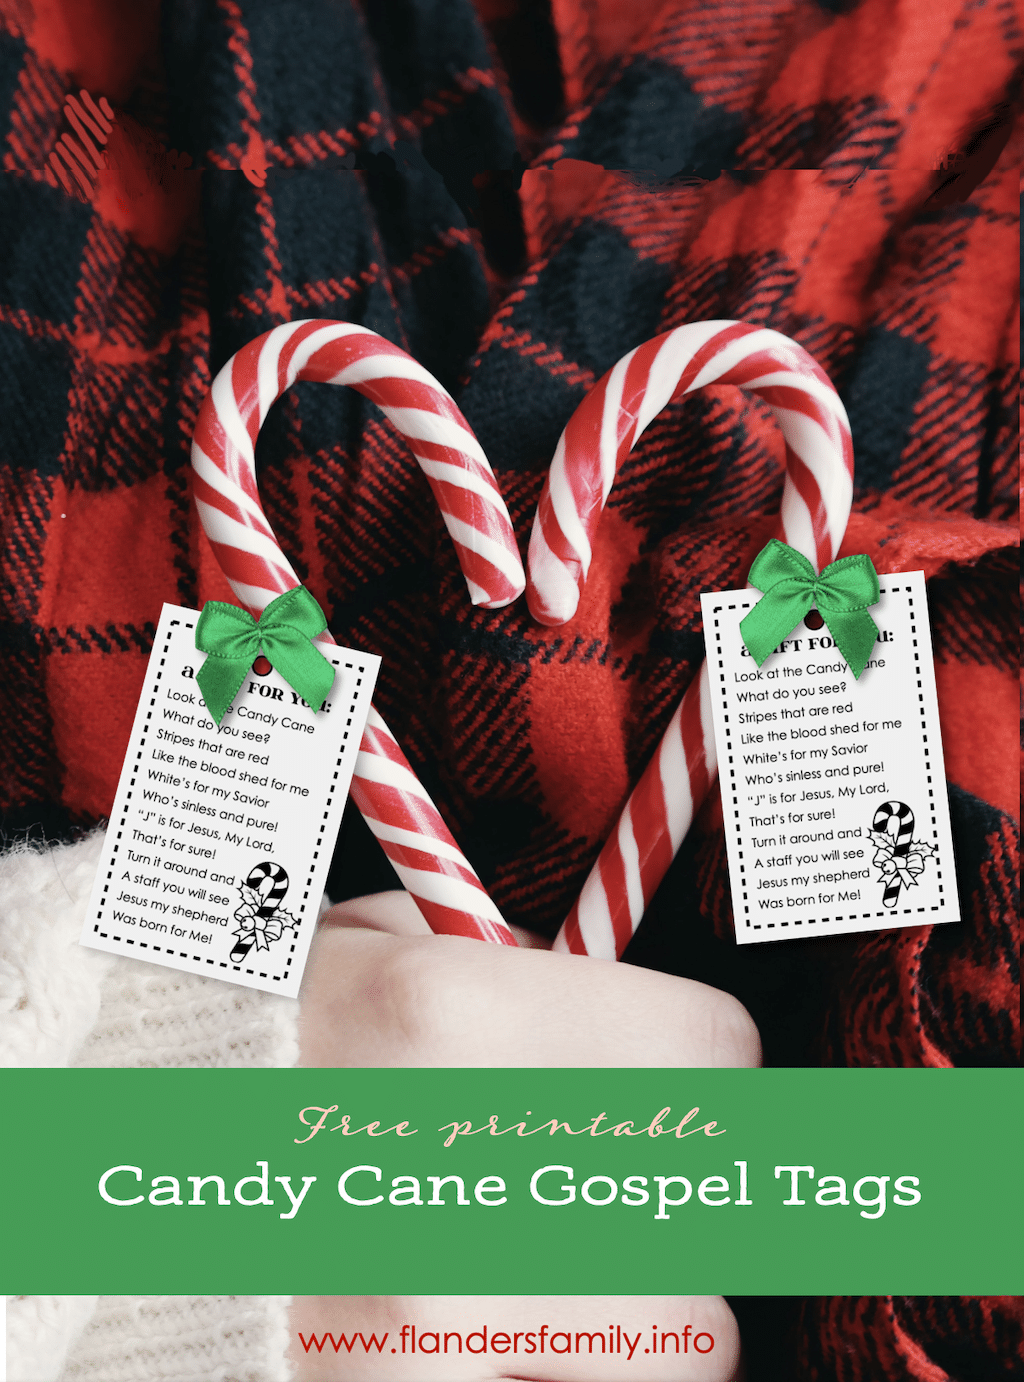 Candy Cane Gospel - Free Printable Tags